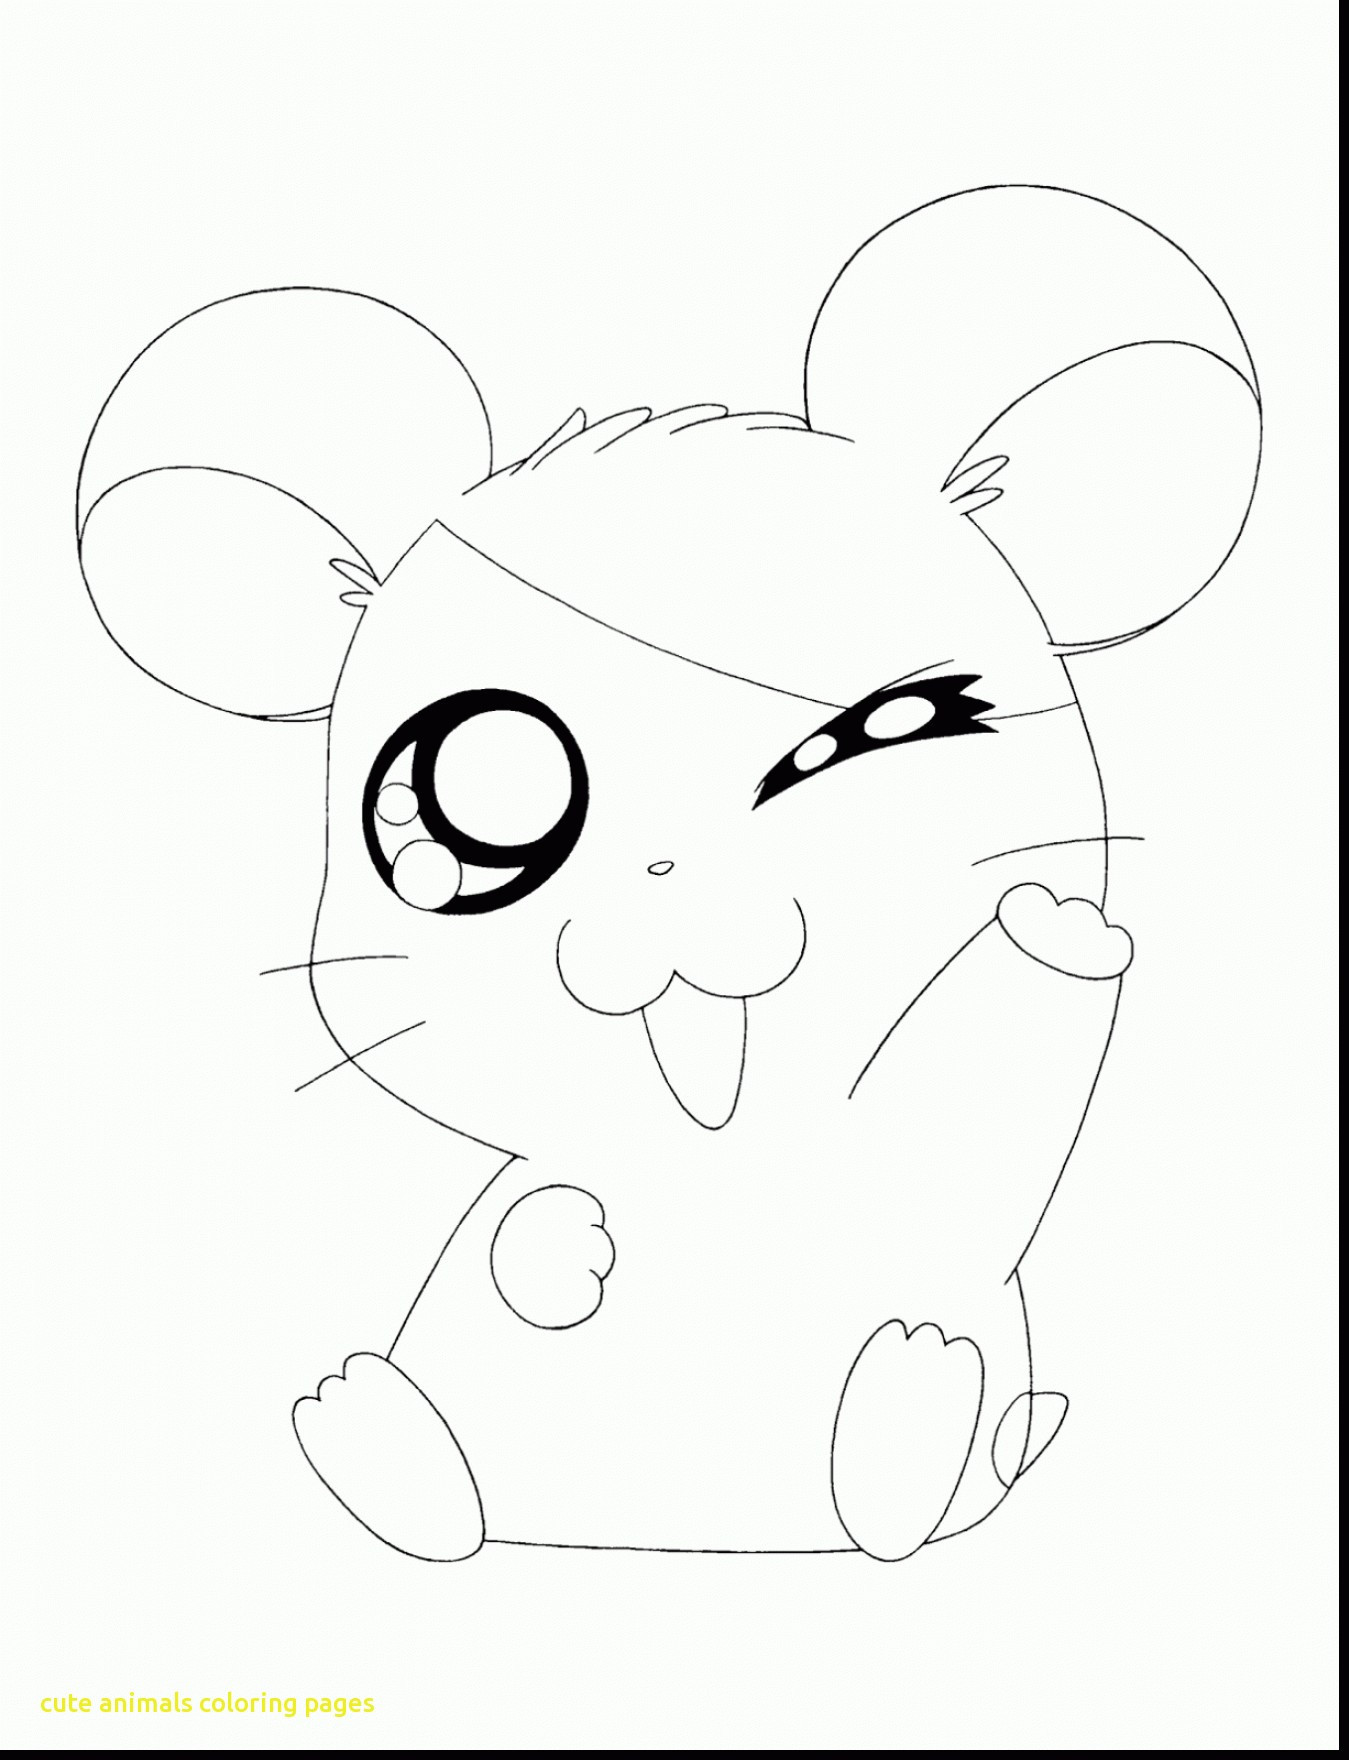 1349x1760 Cute Animal Coloring Pages Throughout Pictures Acpra